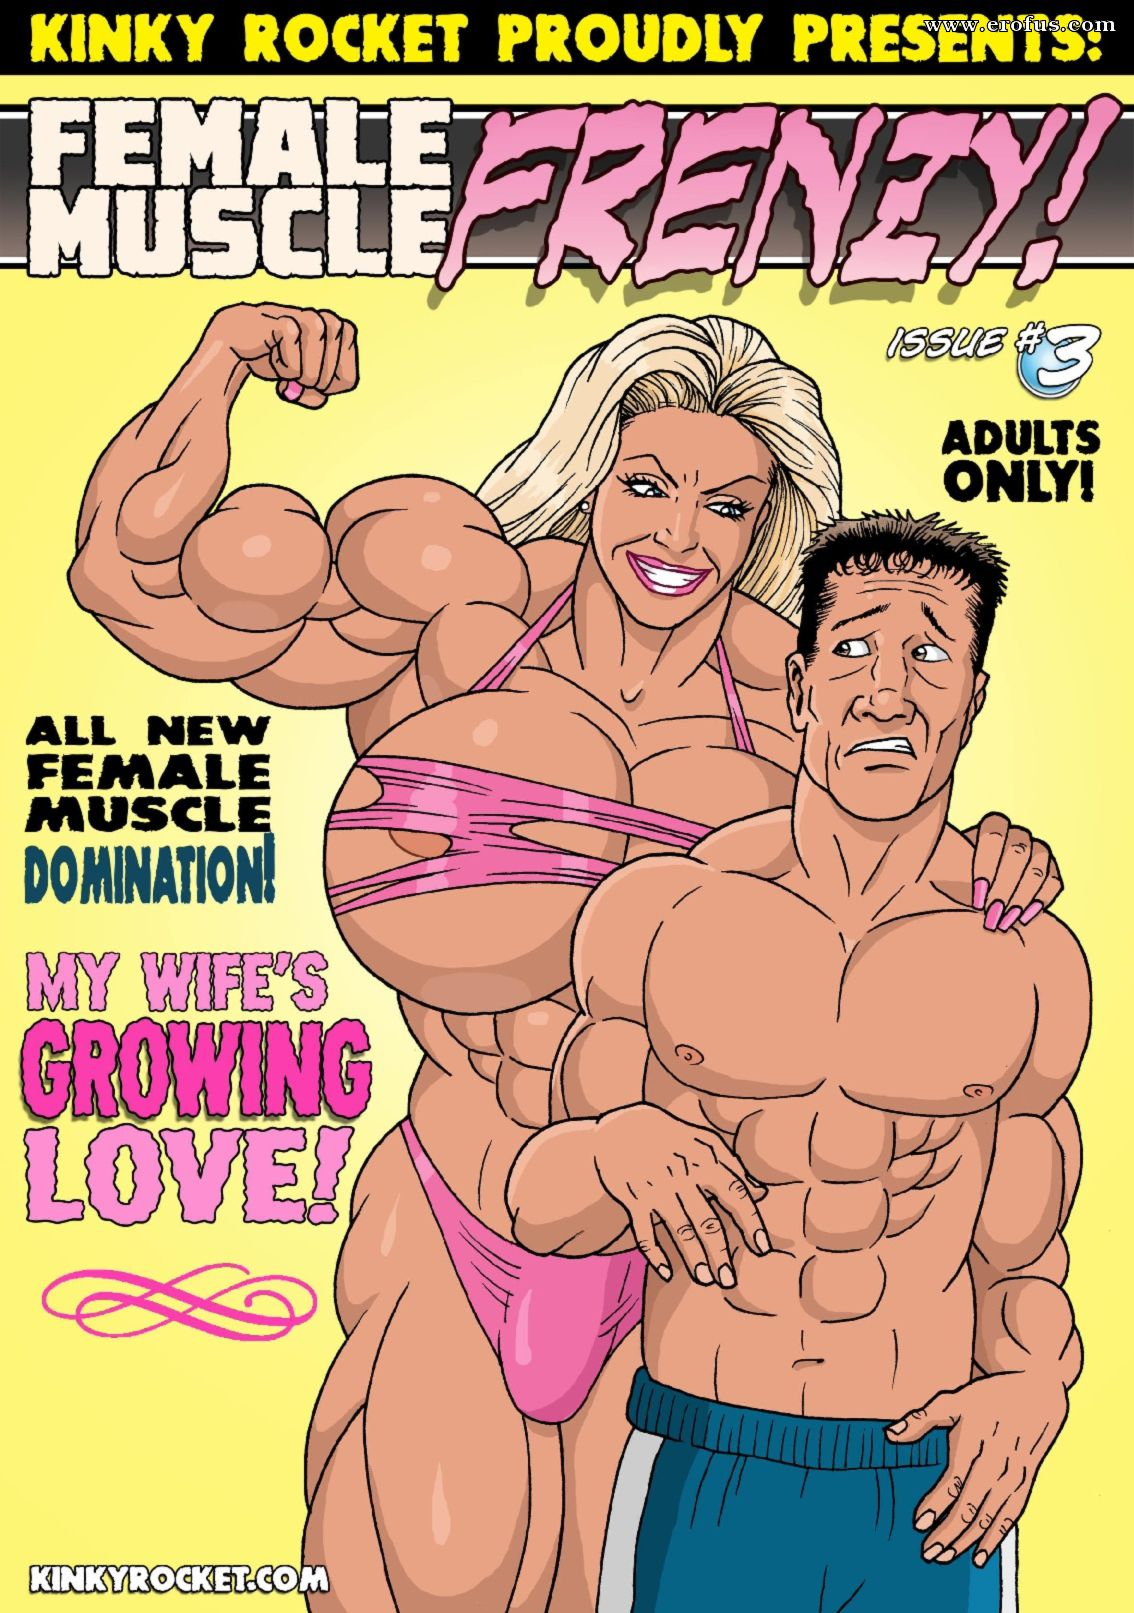 Muscle girl comic porno Page 1 Various Authors Free Comic Kinky Rocket Comix Female Muscle Frenzy Issue 3 Erofus Sex And Porn Comics